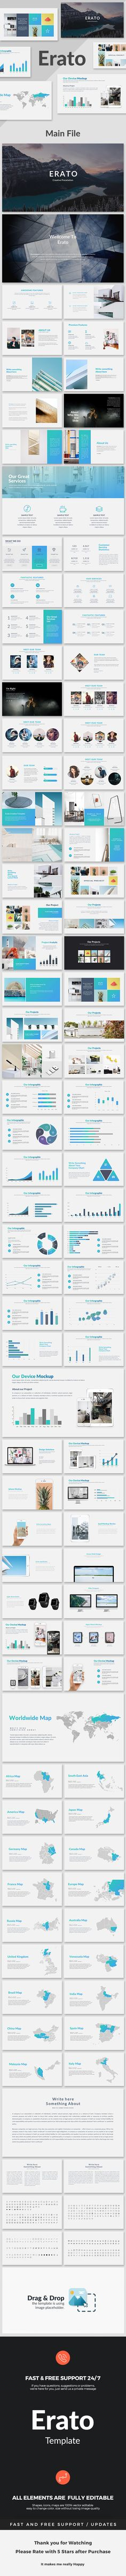 Buy Erato - Creative Powerpoint Template by SlidesX on GraphicRiver. Easy and fully editable in PowerPoint (shape co. Presentation Design Template, Presentation Slides, Layout Template, Keynote Template, Powerpoint Themes, Creative Powerpoint Templates, Slide Design, Web Design, Graphic Design